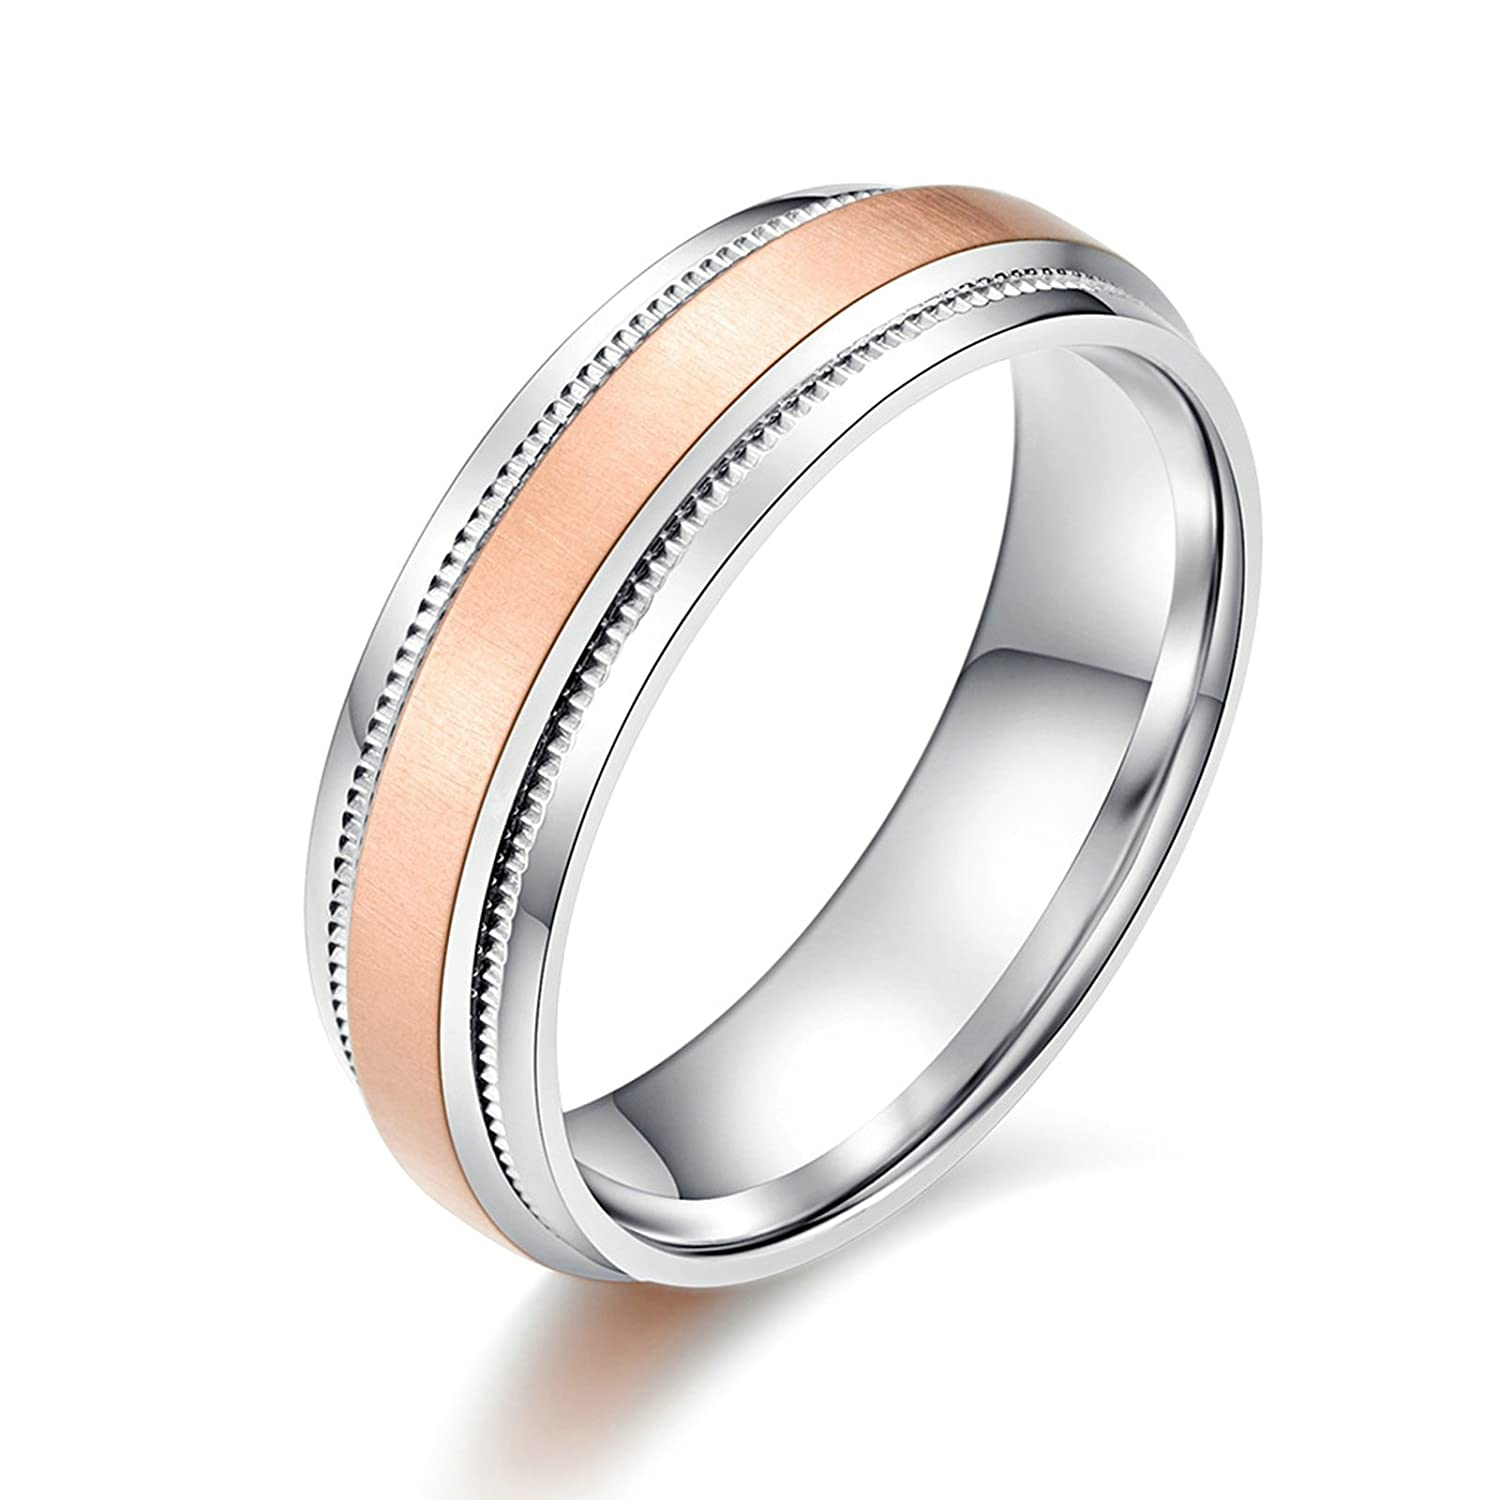 Bishilin Mens Rings Punk Highly Polished Round 6.2 Mm Ring Stainless Steel Wedding Band Size 10